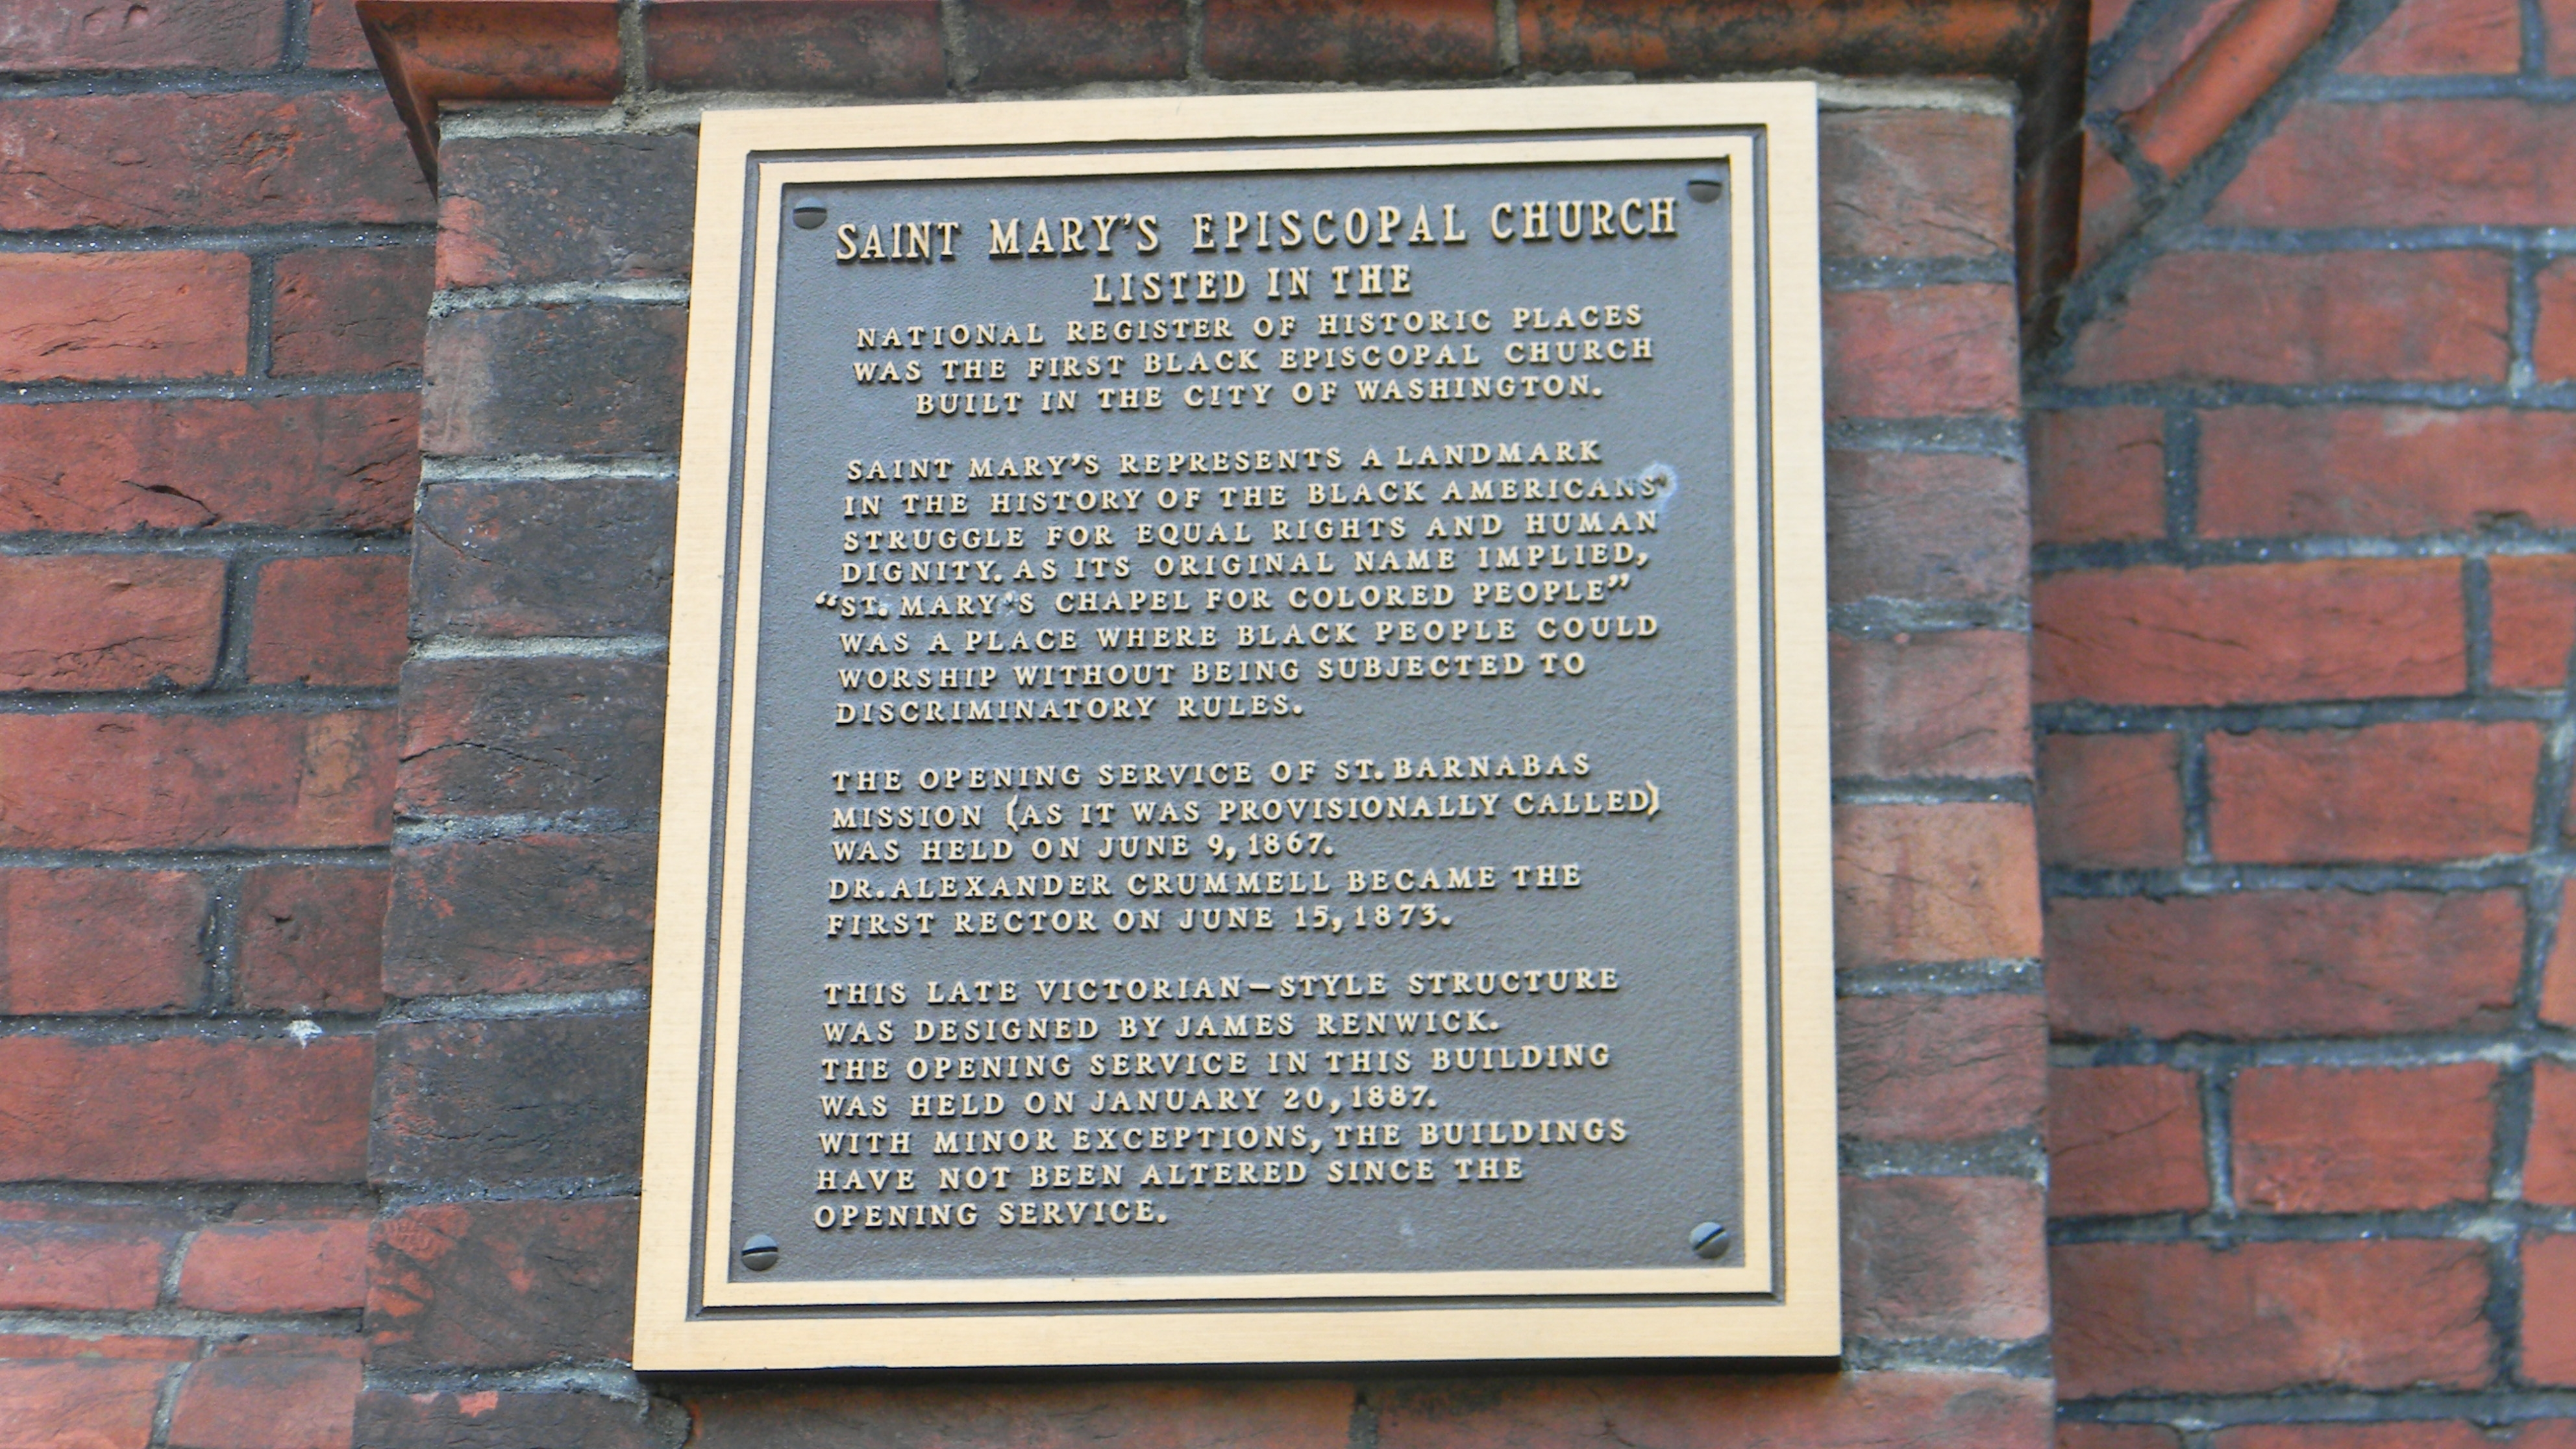 St. Mary's Episcopal Church Marker Panel 2